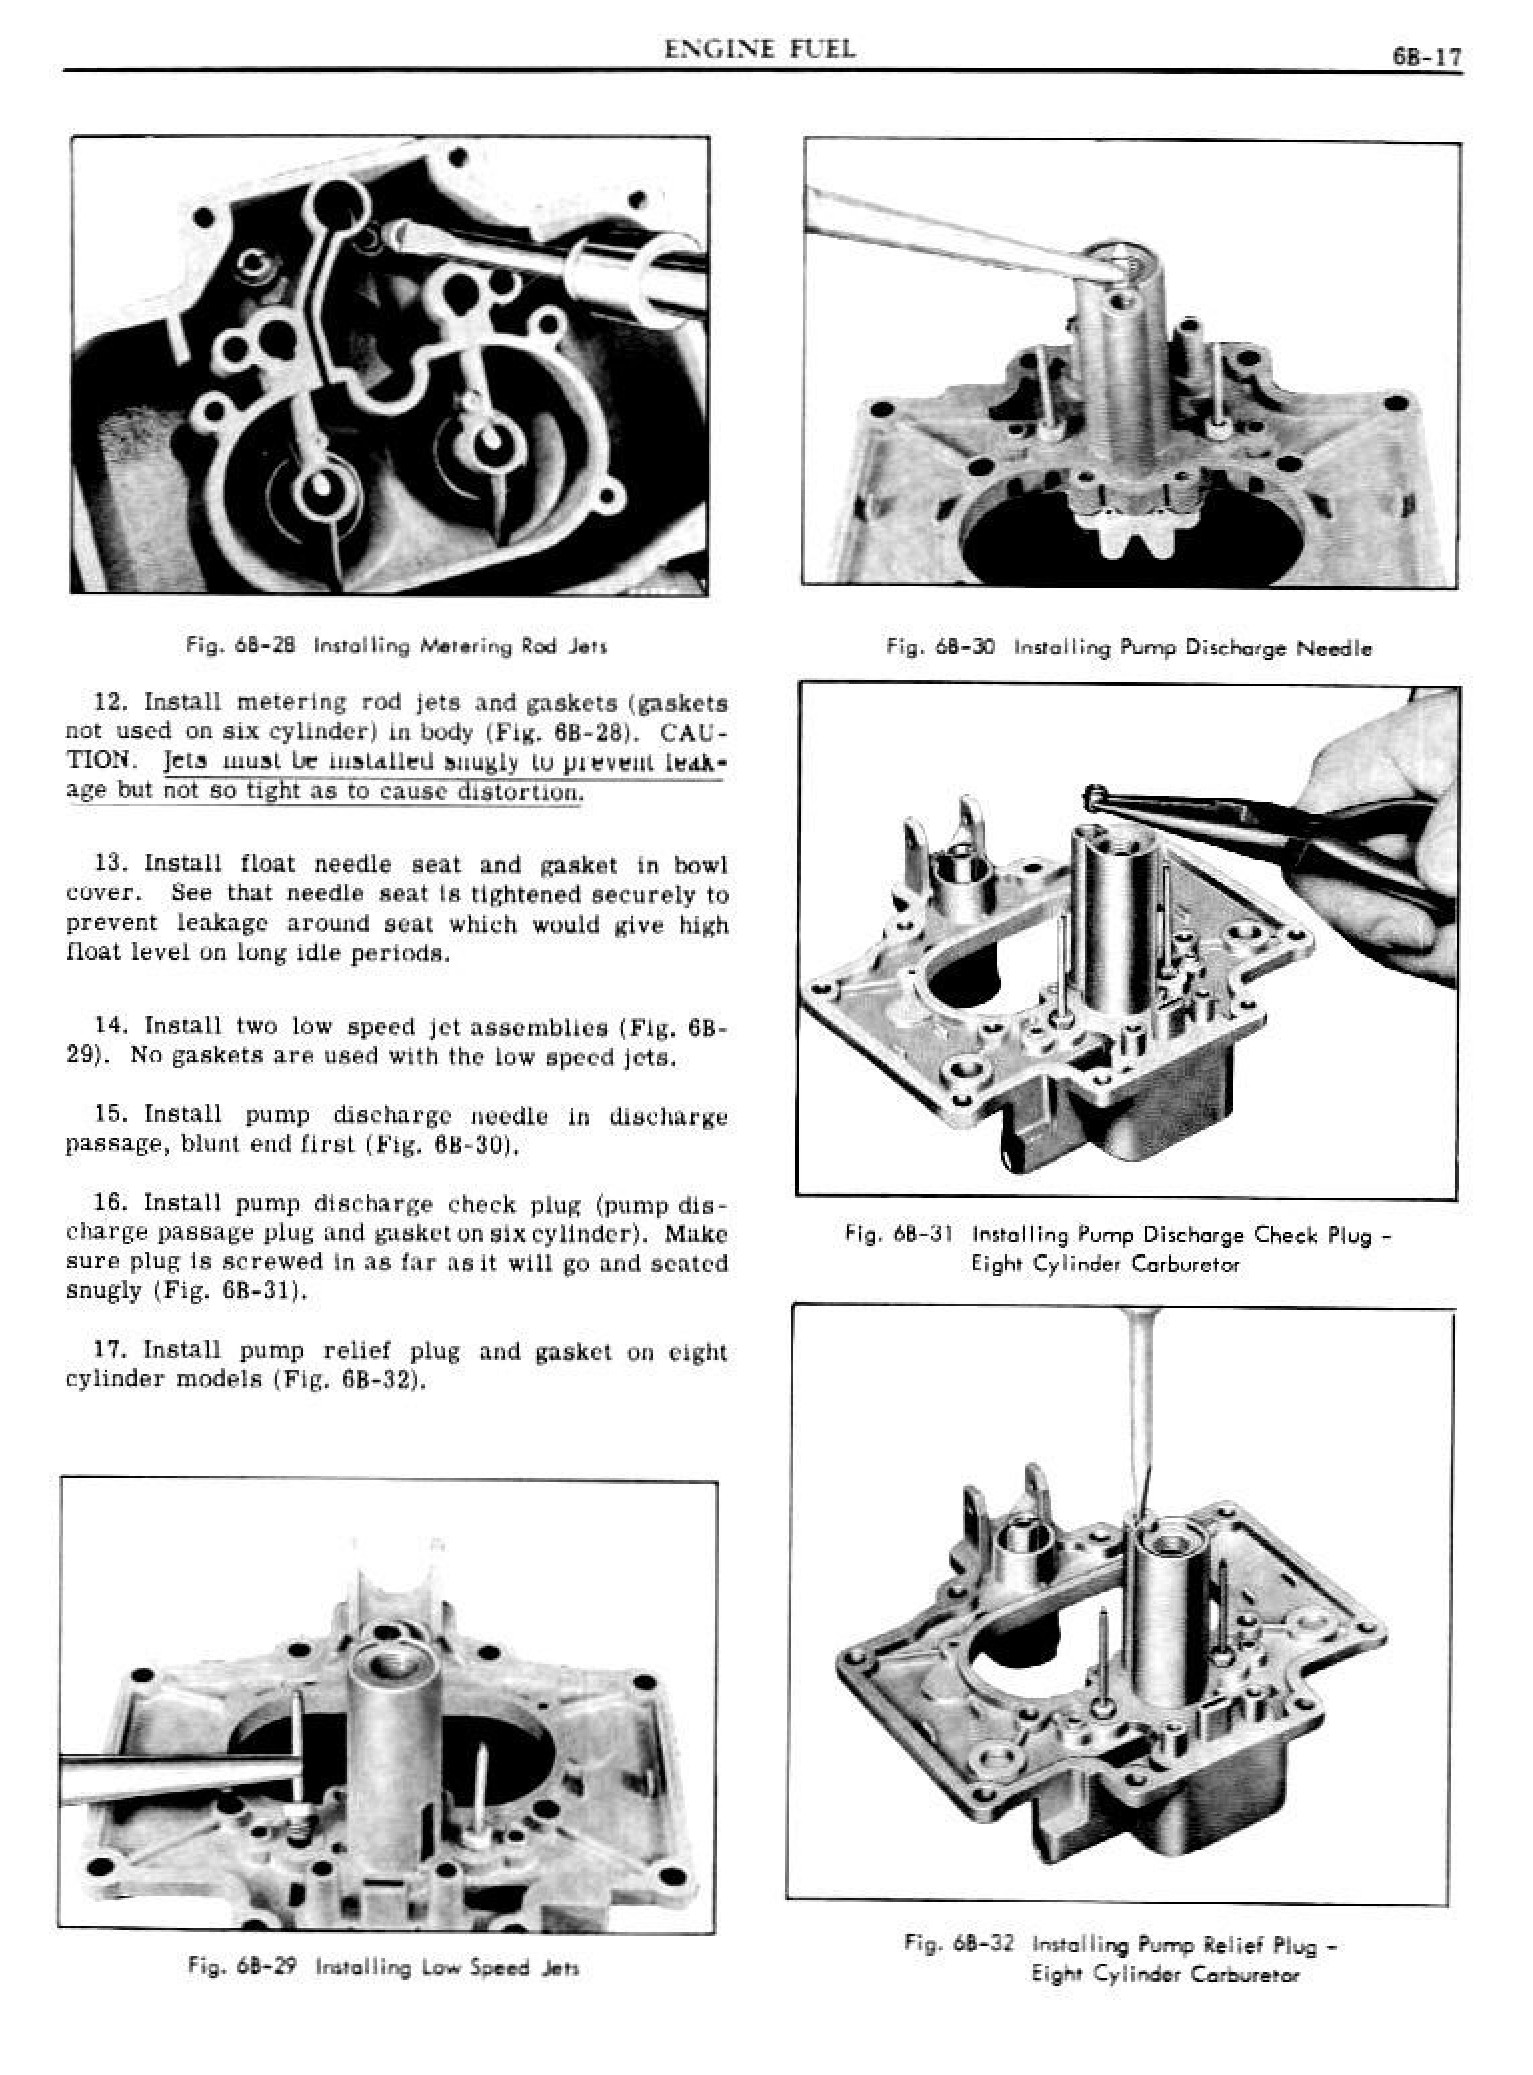 1949 Pontiac Shop Manual- Engine Fuel Page 17 of 42